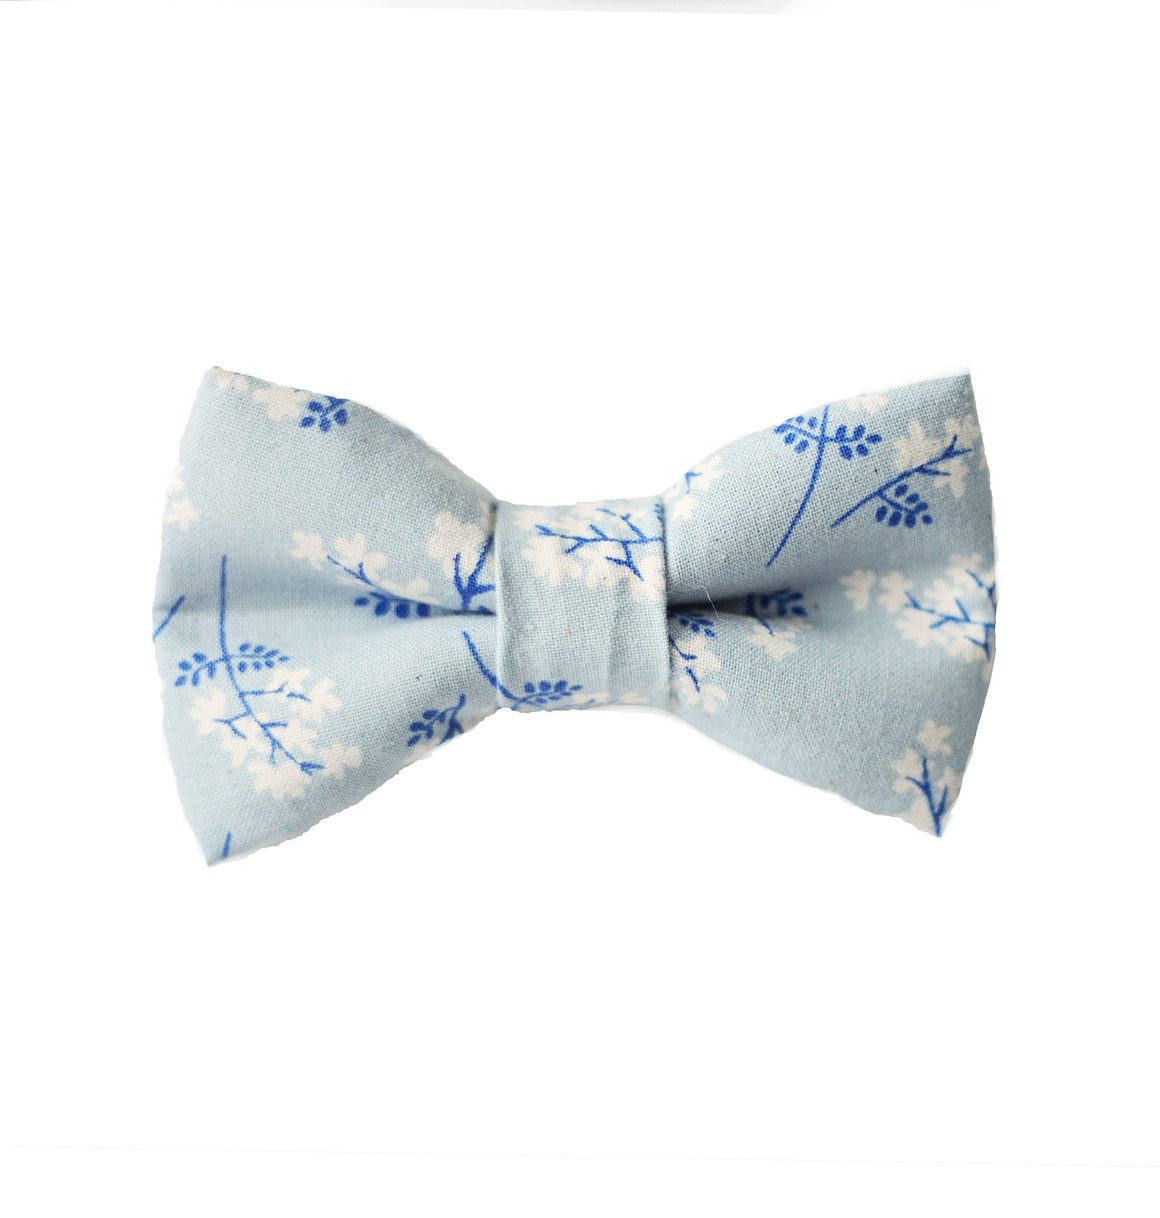 Dusty Blue Floral Bow Tie - Newborn to Adult sizes